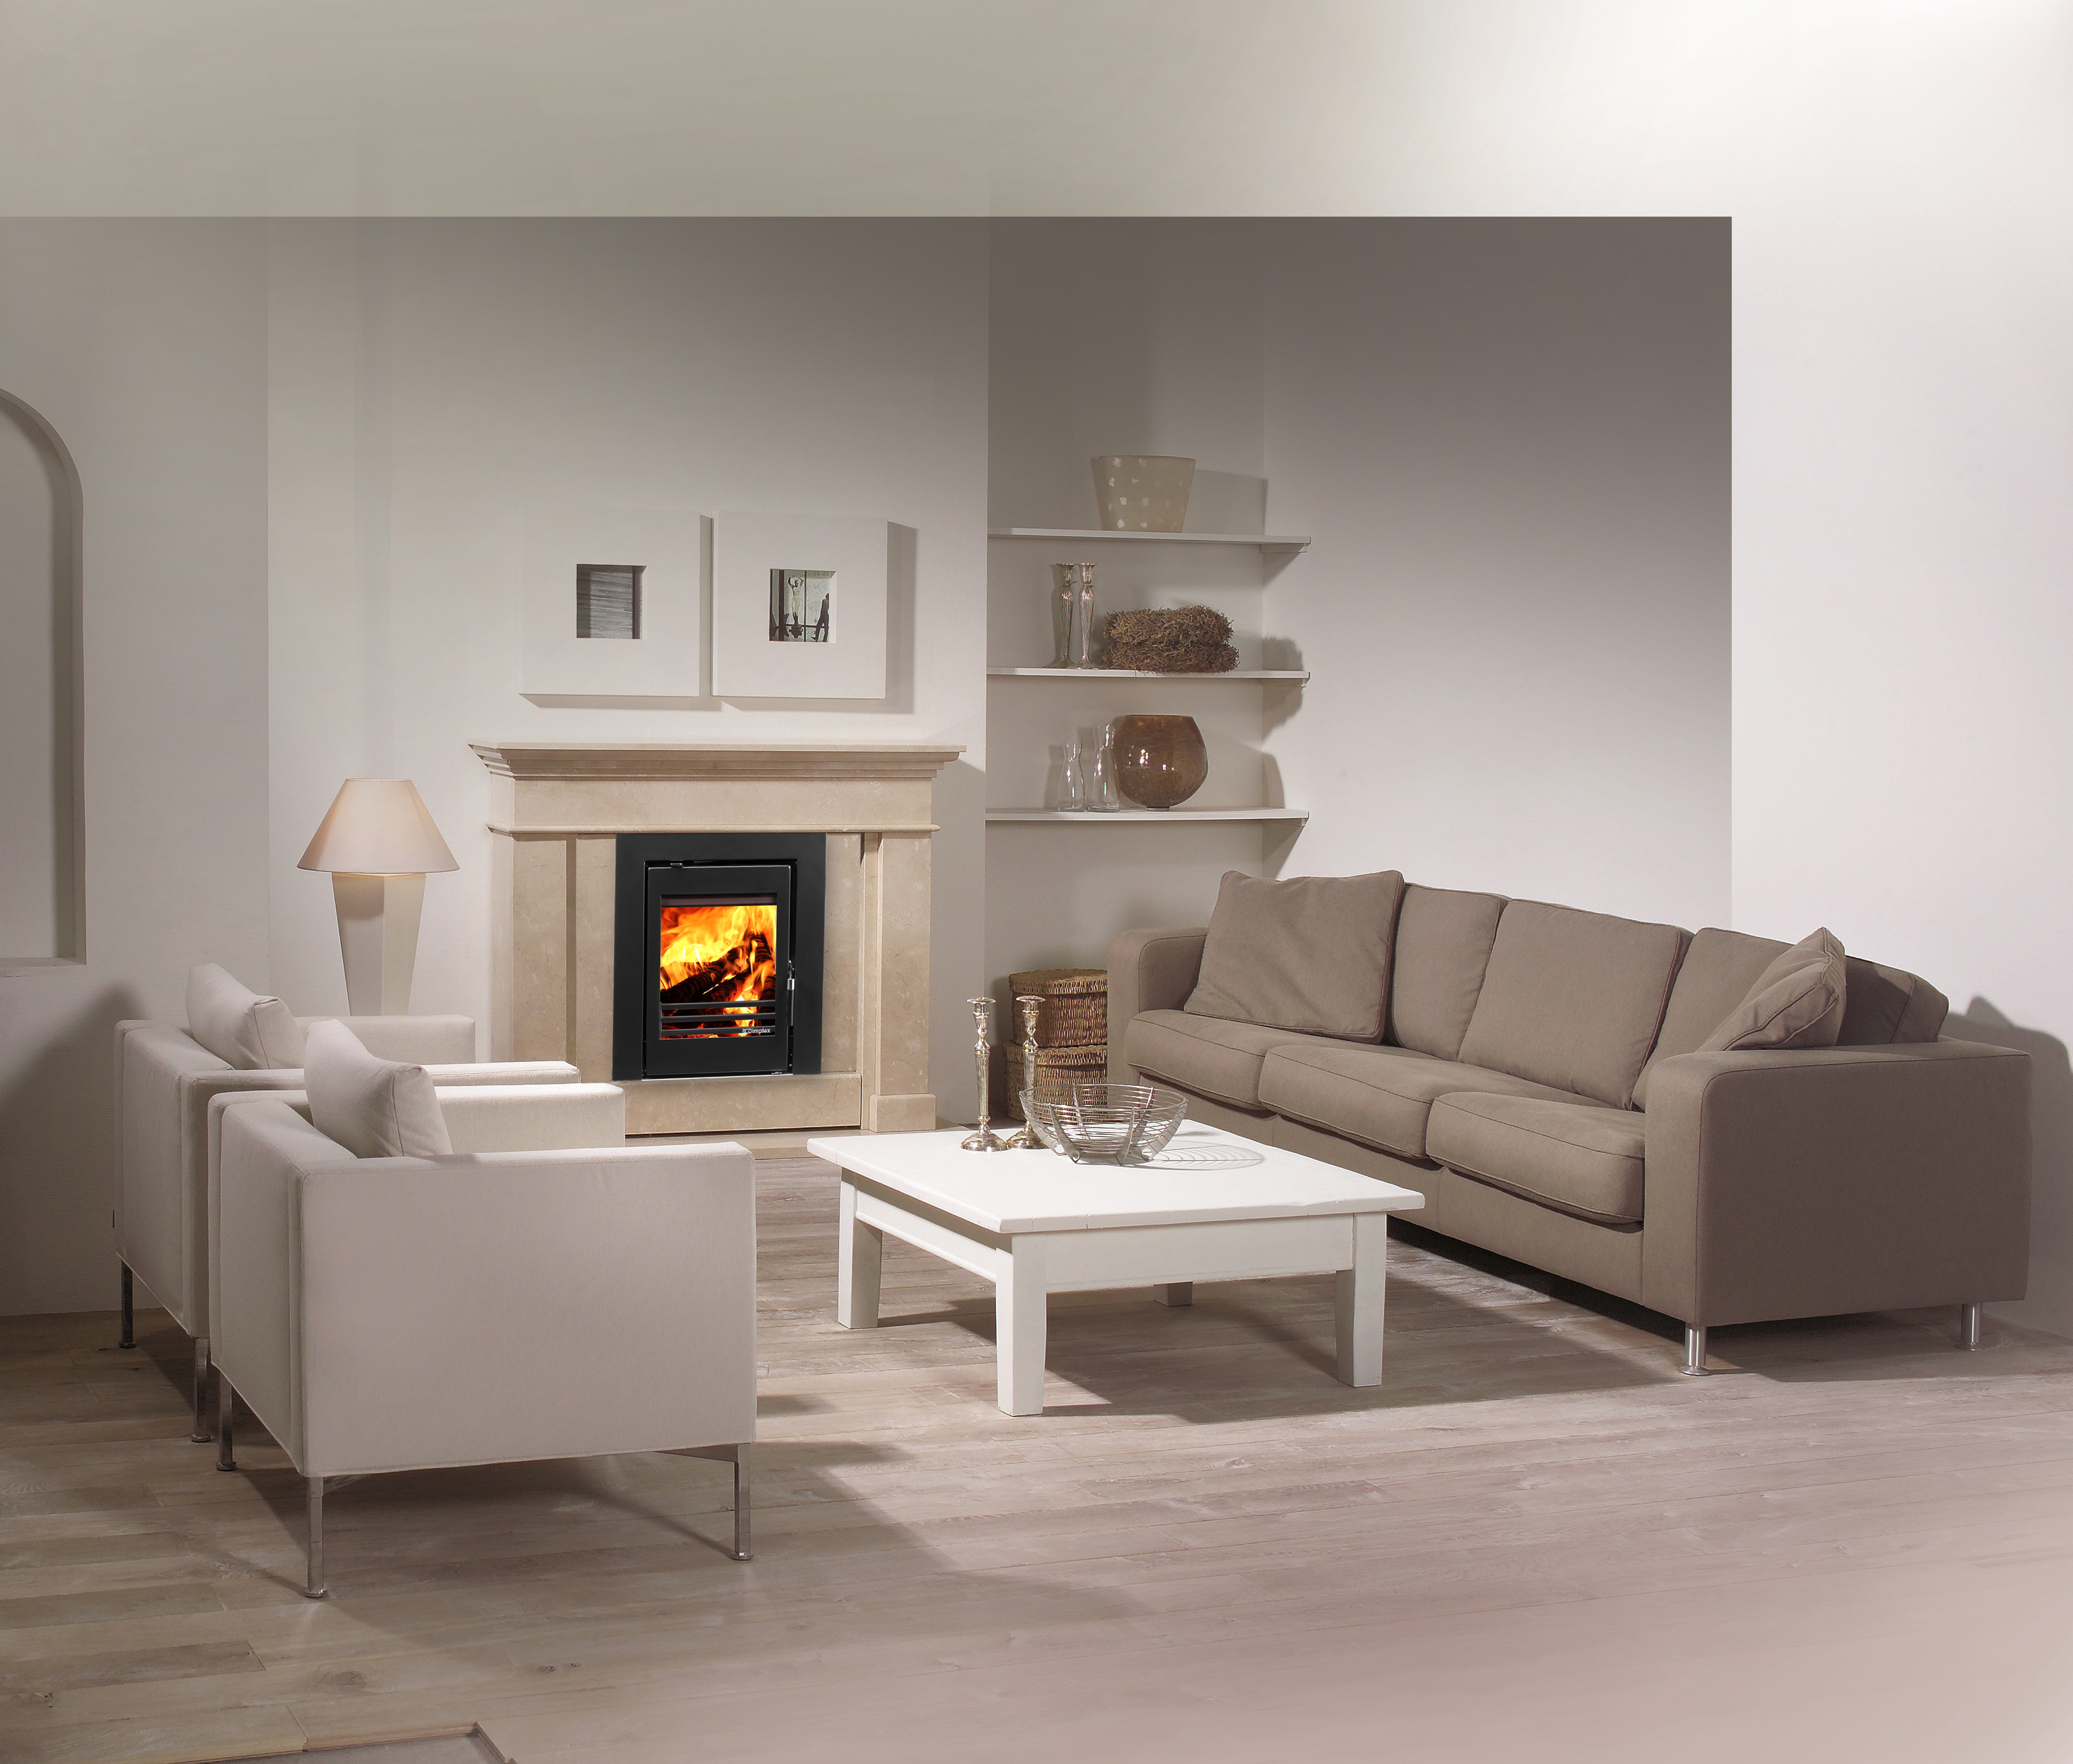 Riley Inset Stove